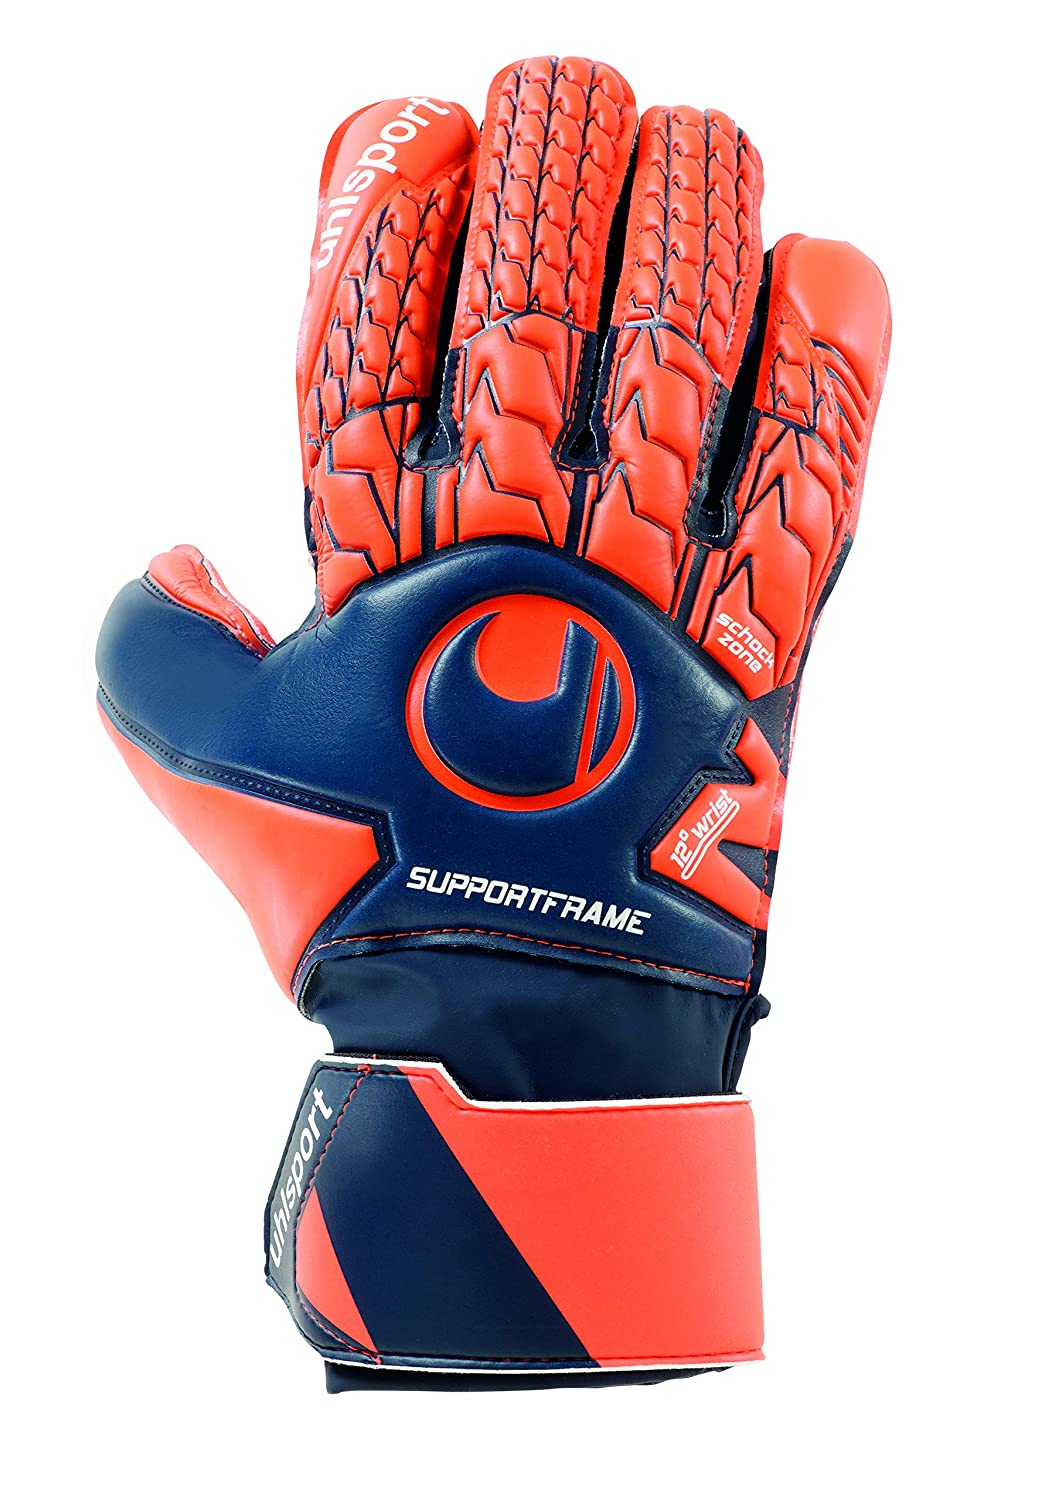 Uhlsport Next Level Soft Sf Torwart-Handschuhe